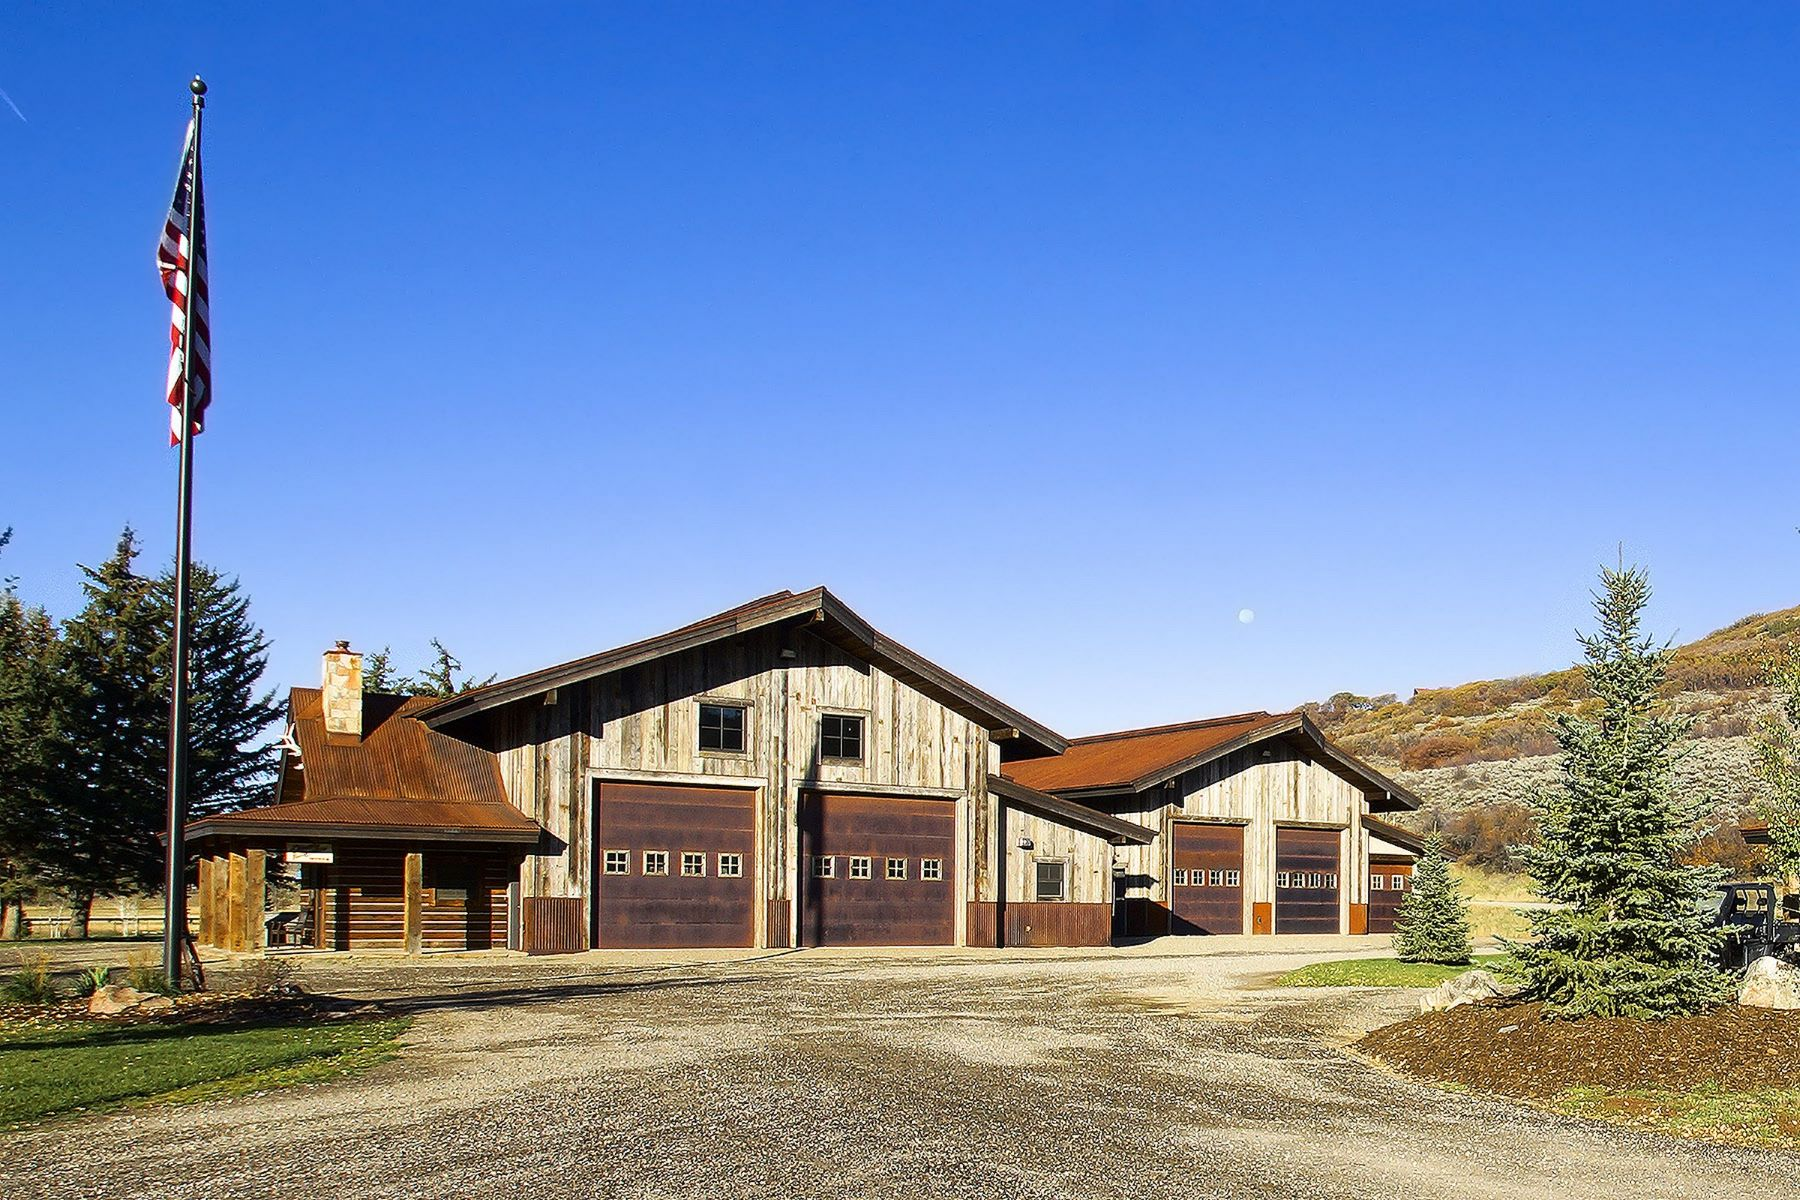 Additional photo for property listing at Steamboat River Ranch 44285 Routt County Road #129 斯廷博特斯普林斯, 科罗拉多州 80487 美国